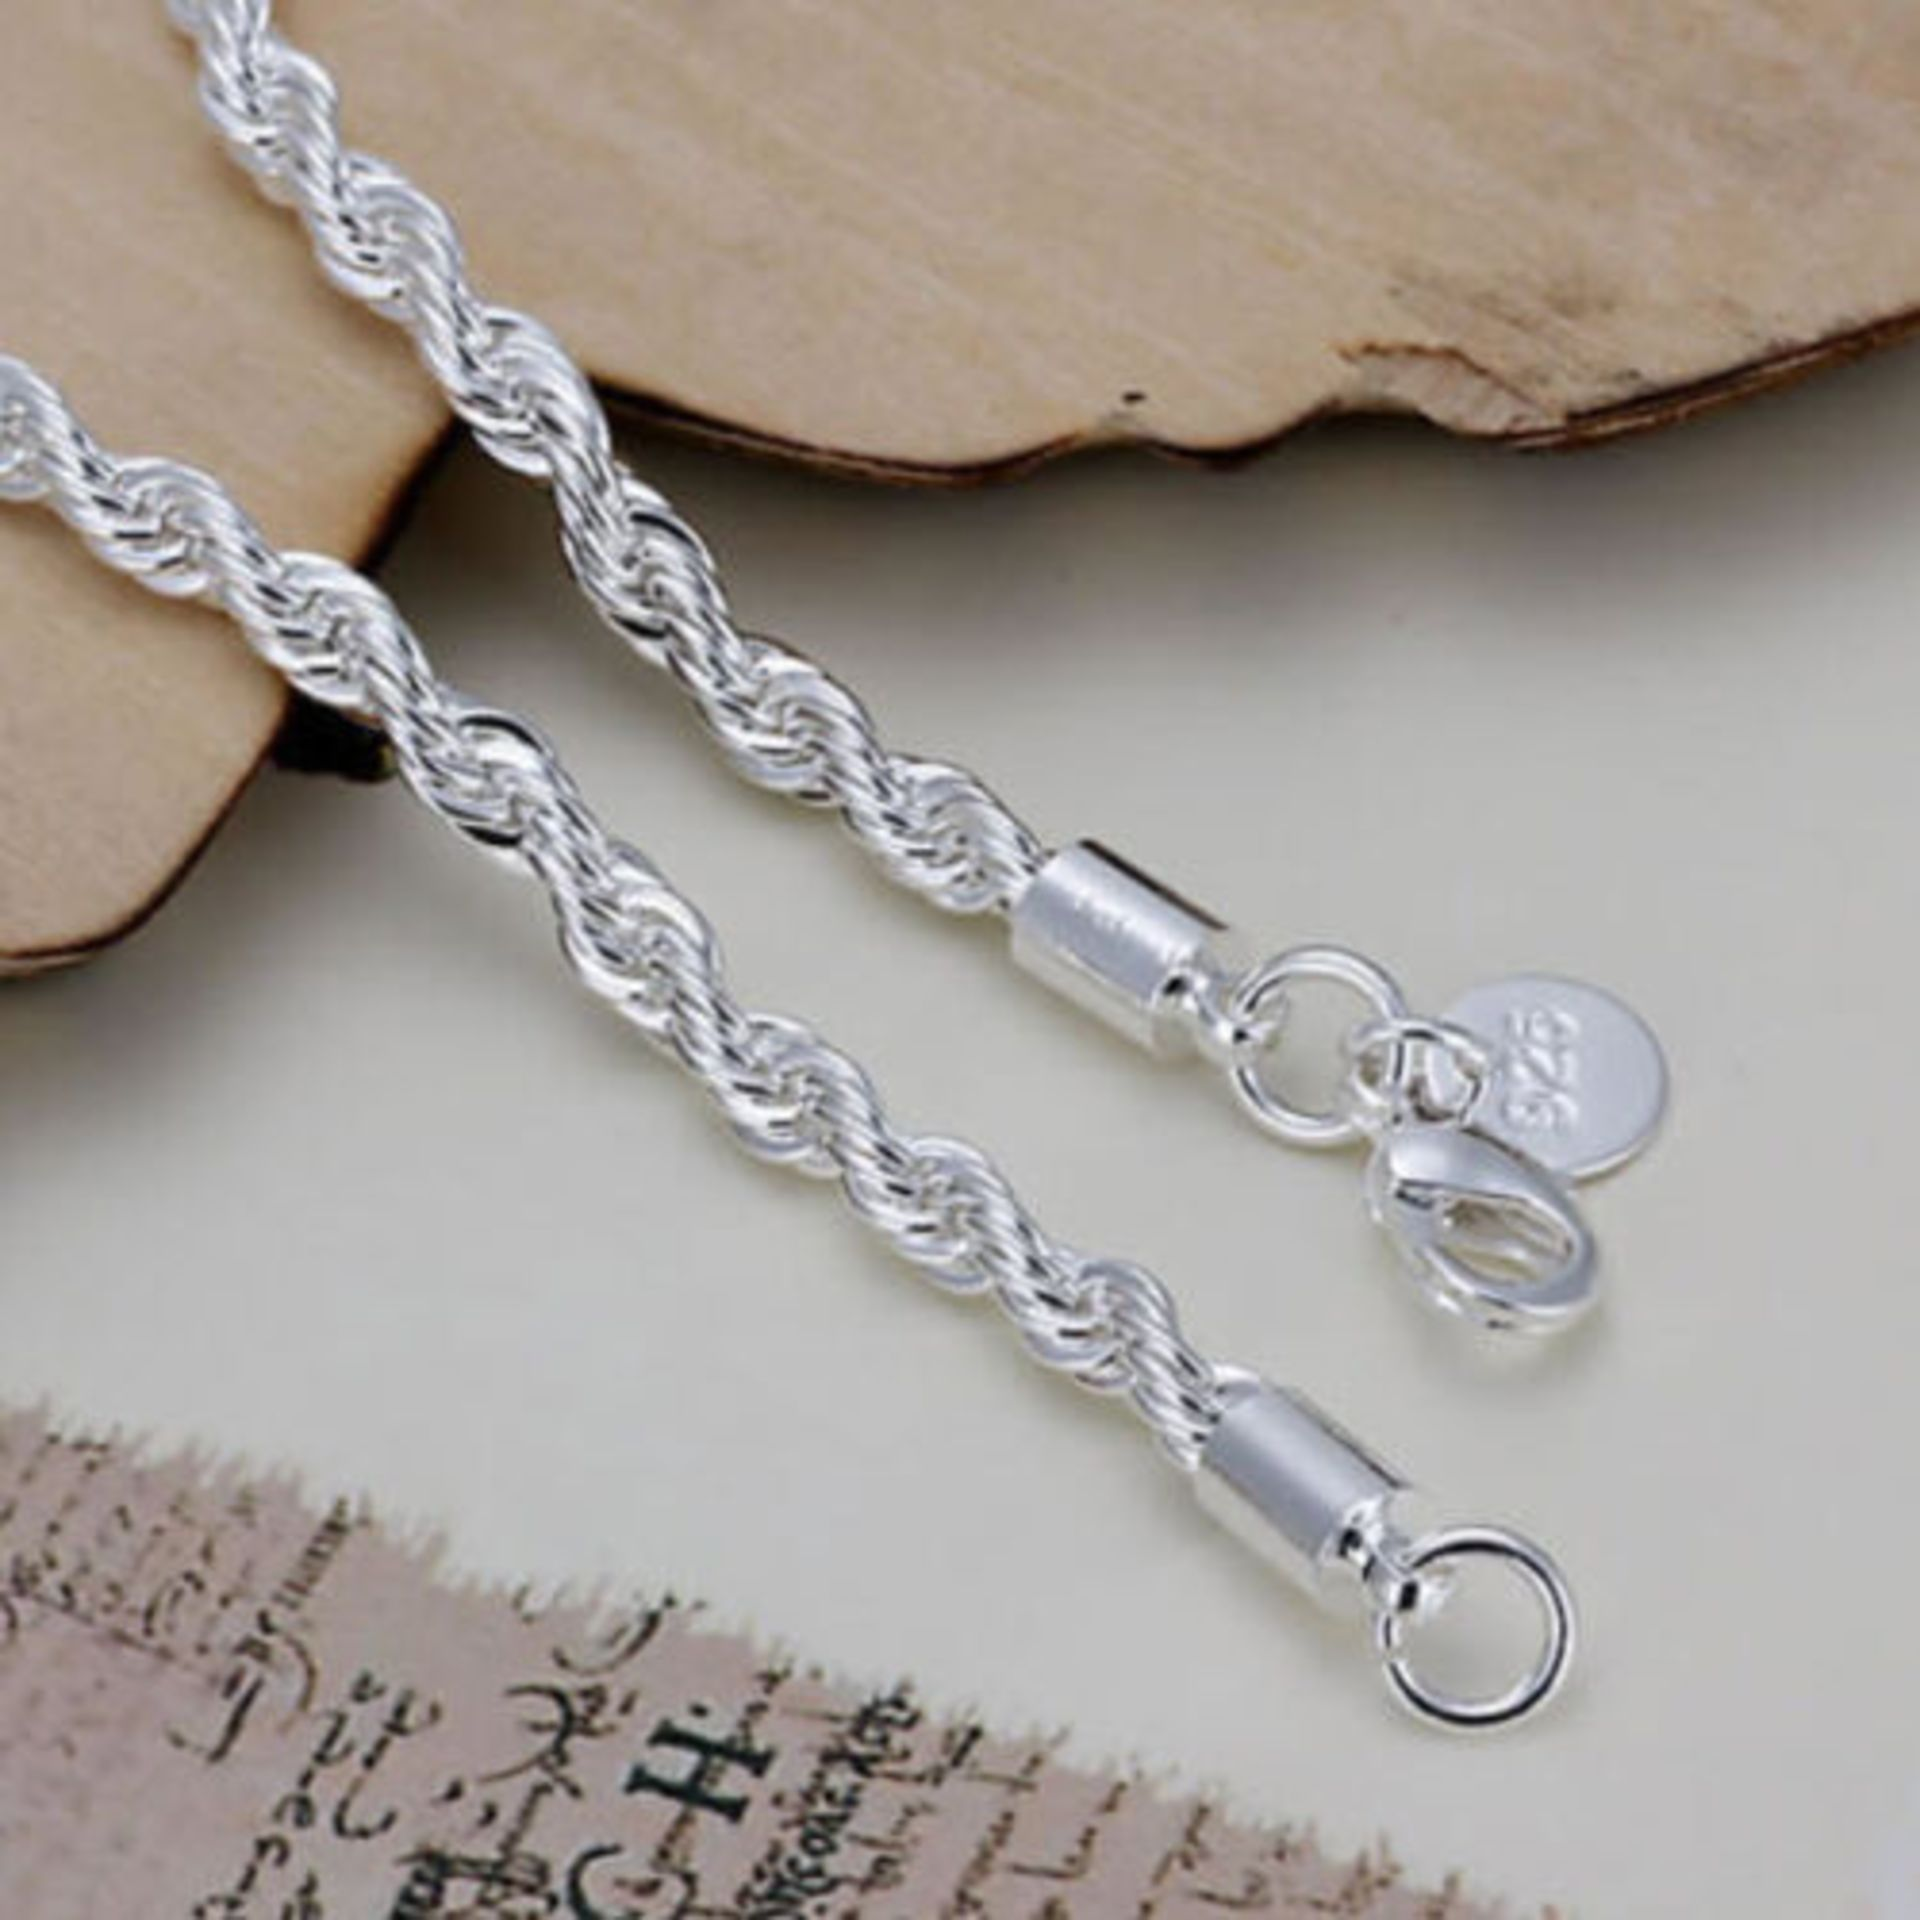 925 Sterling Silver Plated Twisted Rope Bracelet 3mm Thick Chain Link *NO VAT* - Image 2 of 4